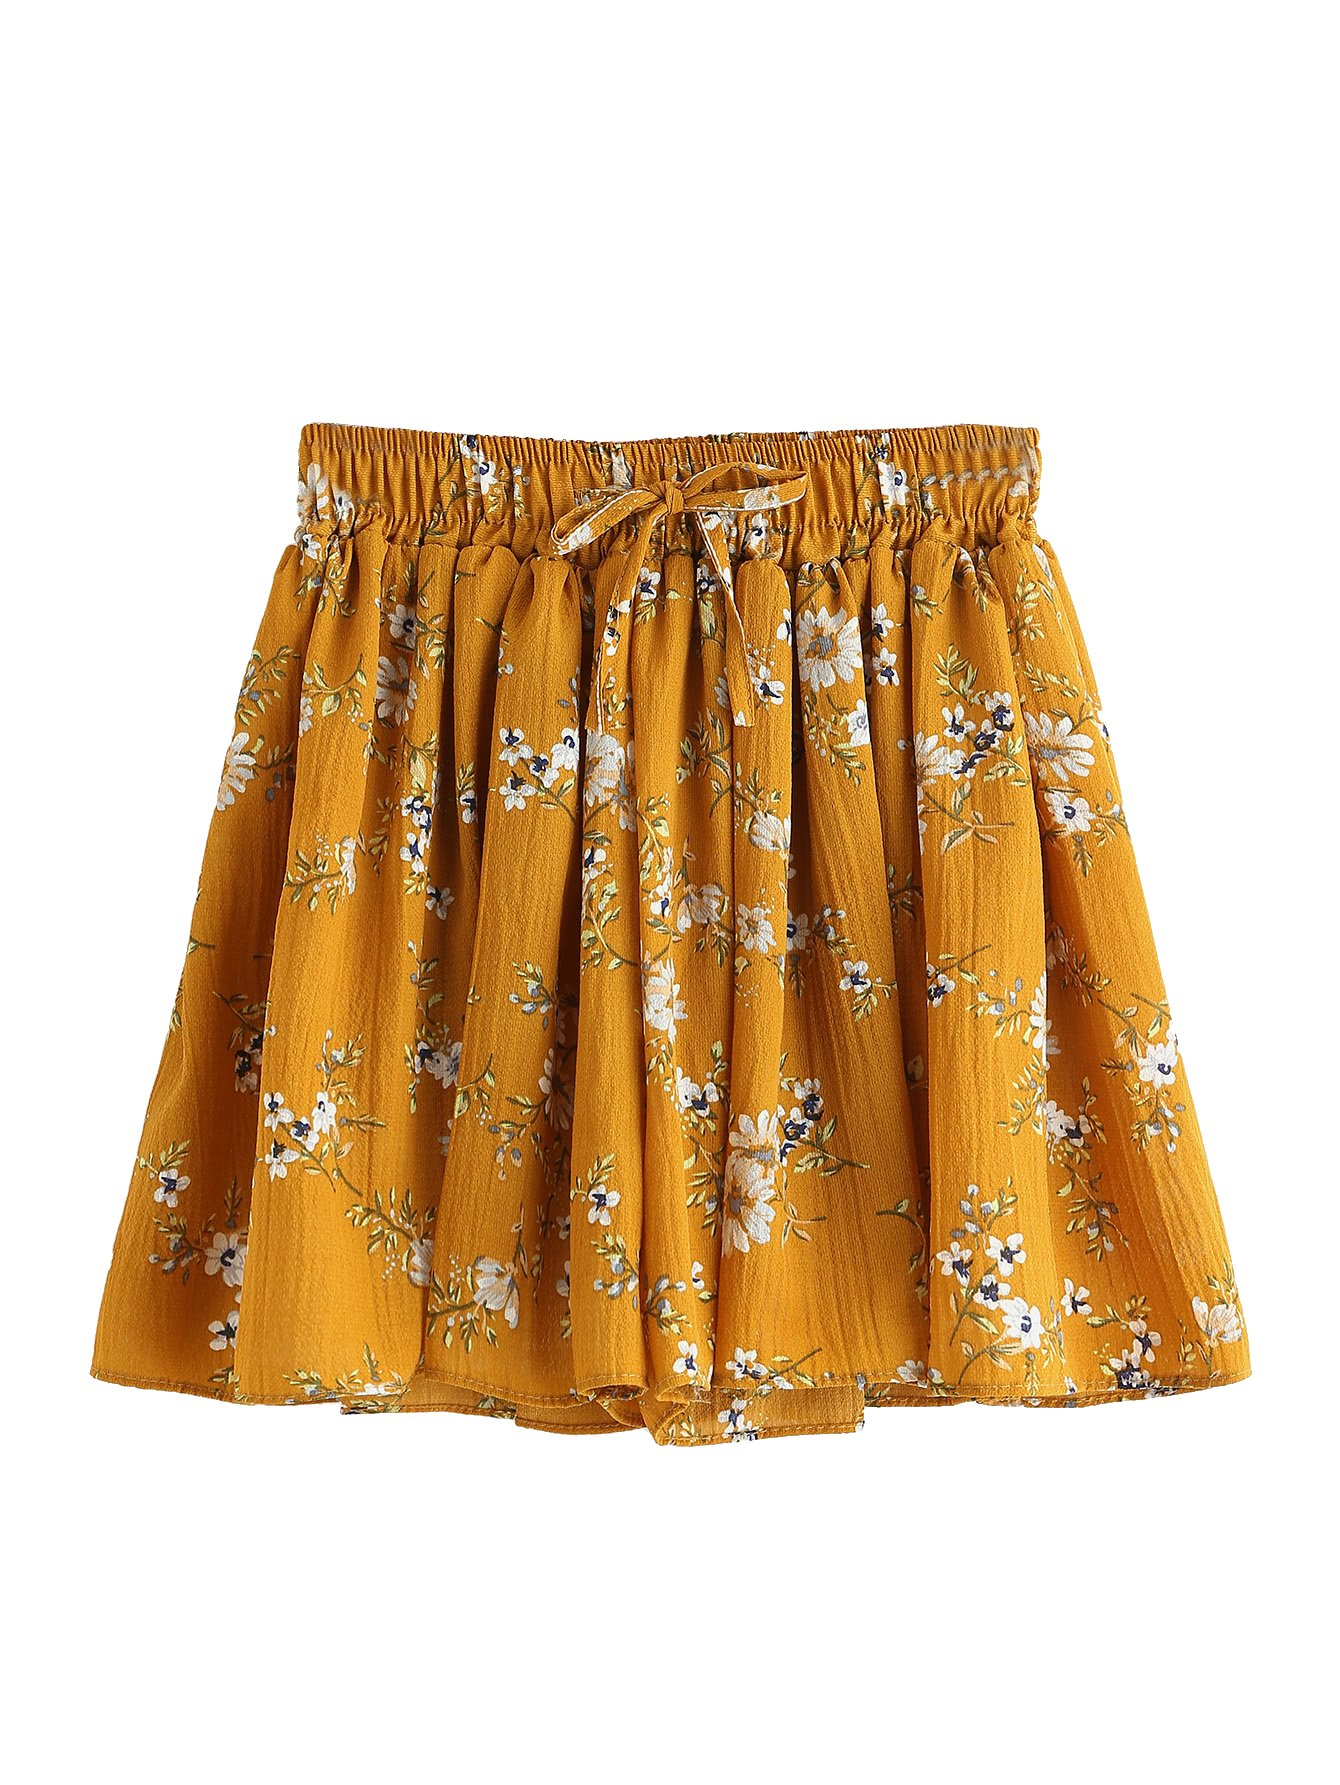 SweatyRocks Women's Vintage Floral Embroidery Drawstring Summer Casual Shorts (Medium, Yellow)